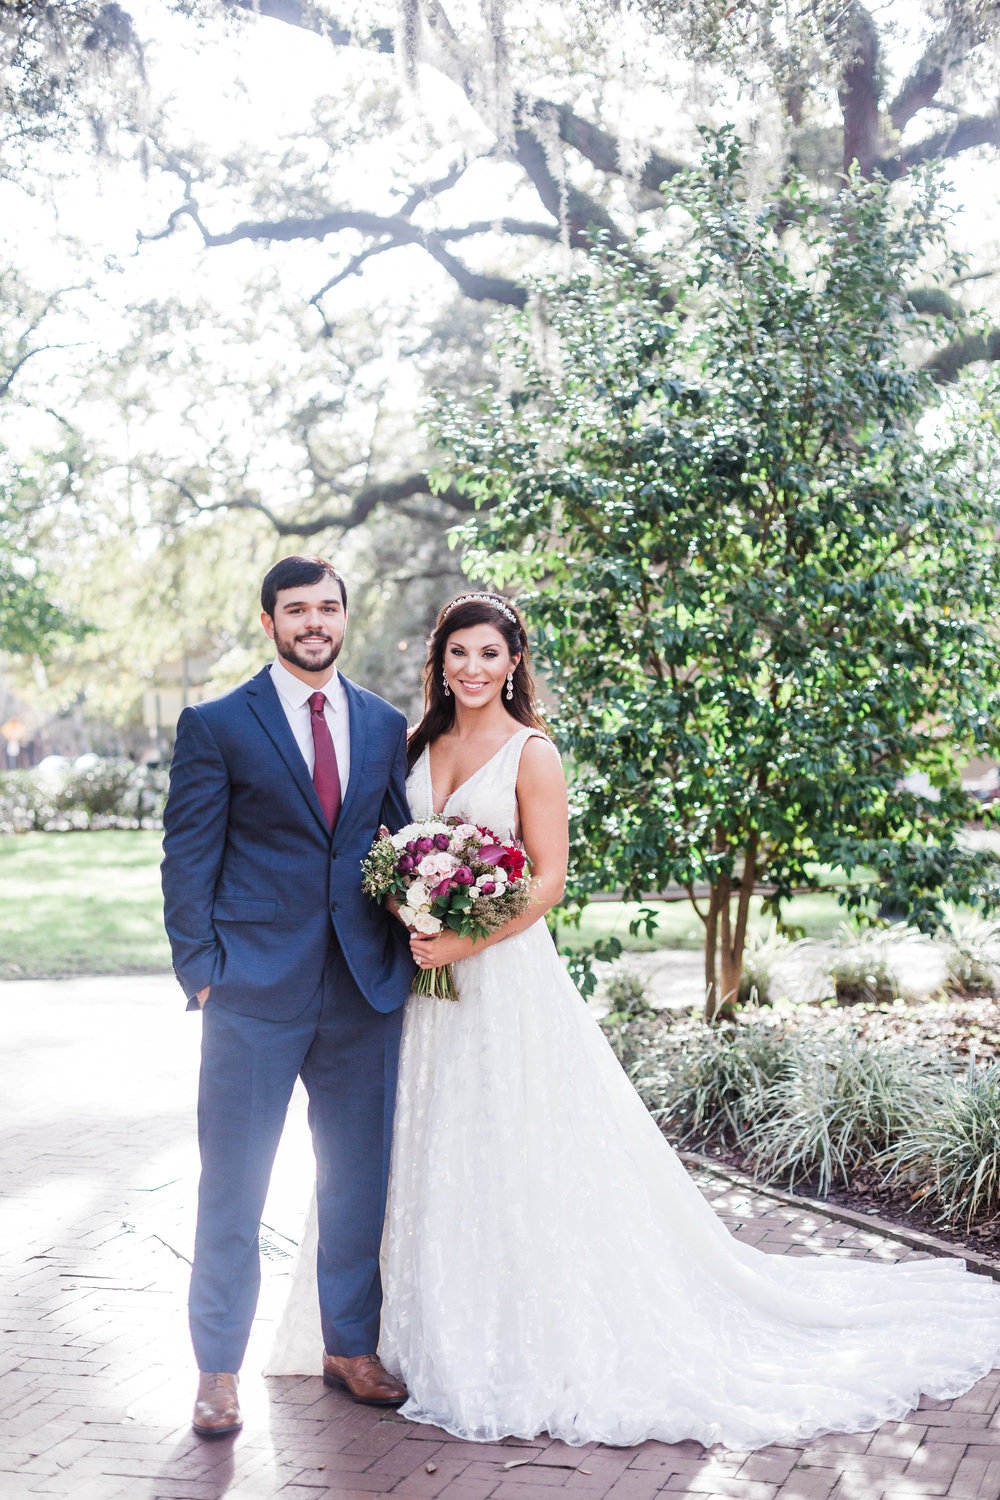 apt-b-photography-lindsey-shawn-Savannah-wedding-photographer-savannah-elopement-photographer-historic-savannah-elopement-savannah-weddings-hilton-head-wedding-photographer-jekyll-island-wedding-photographer-24.jpg